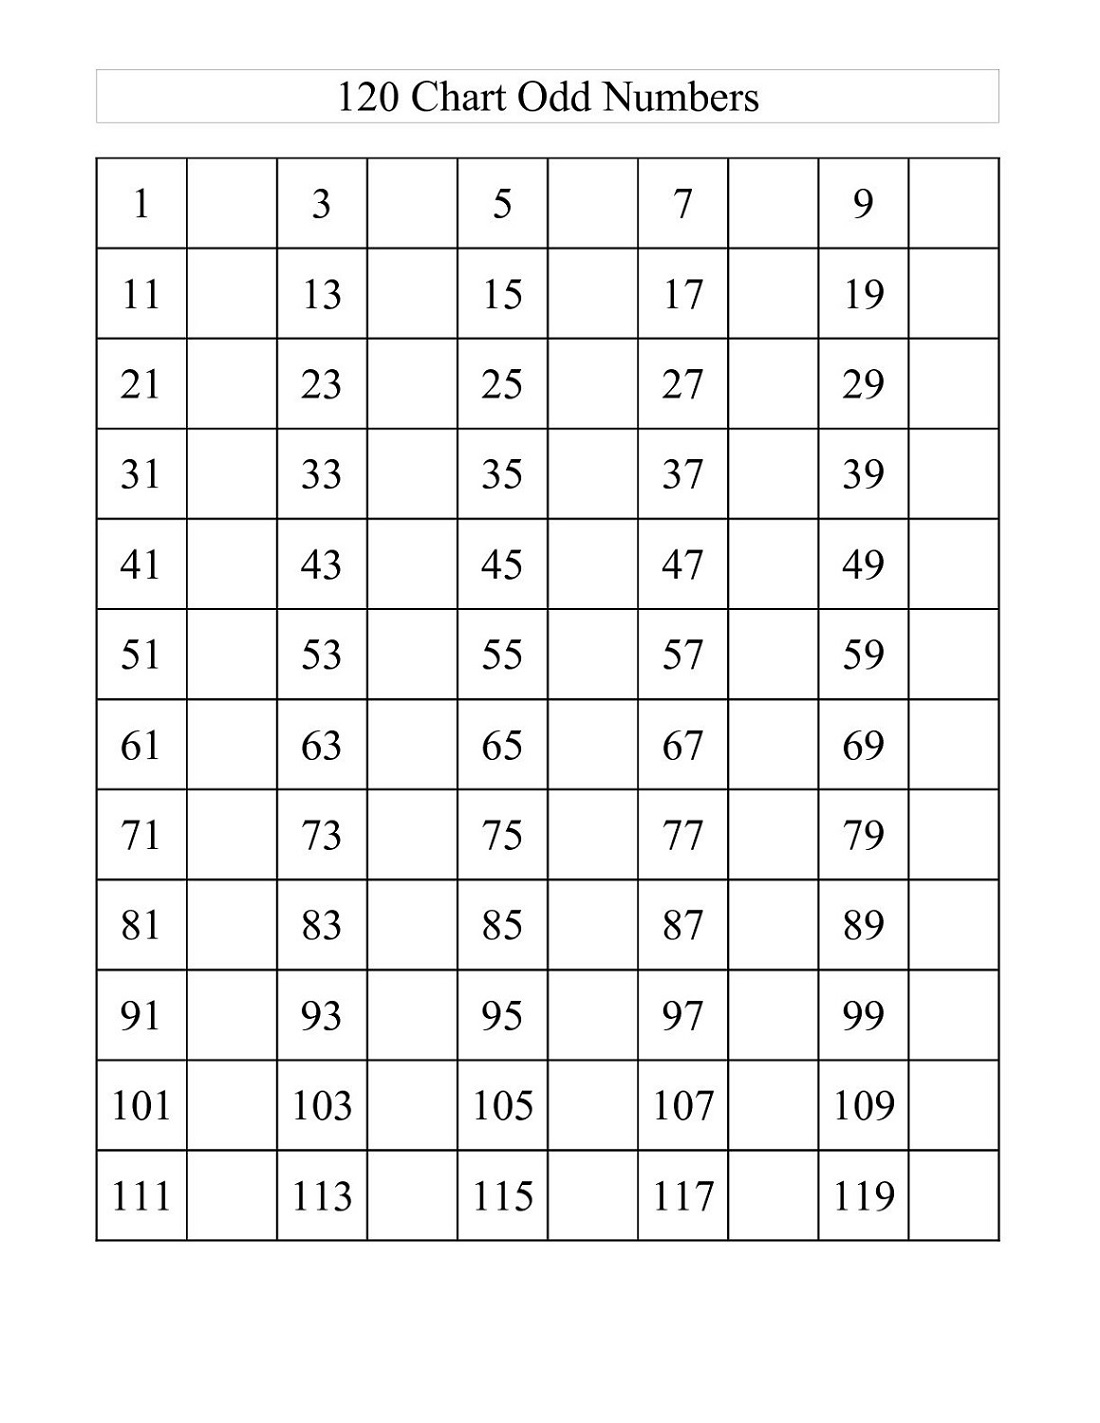 120 Odd Numbers Chart